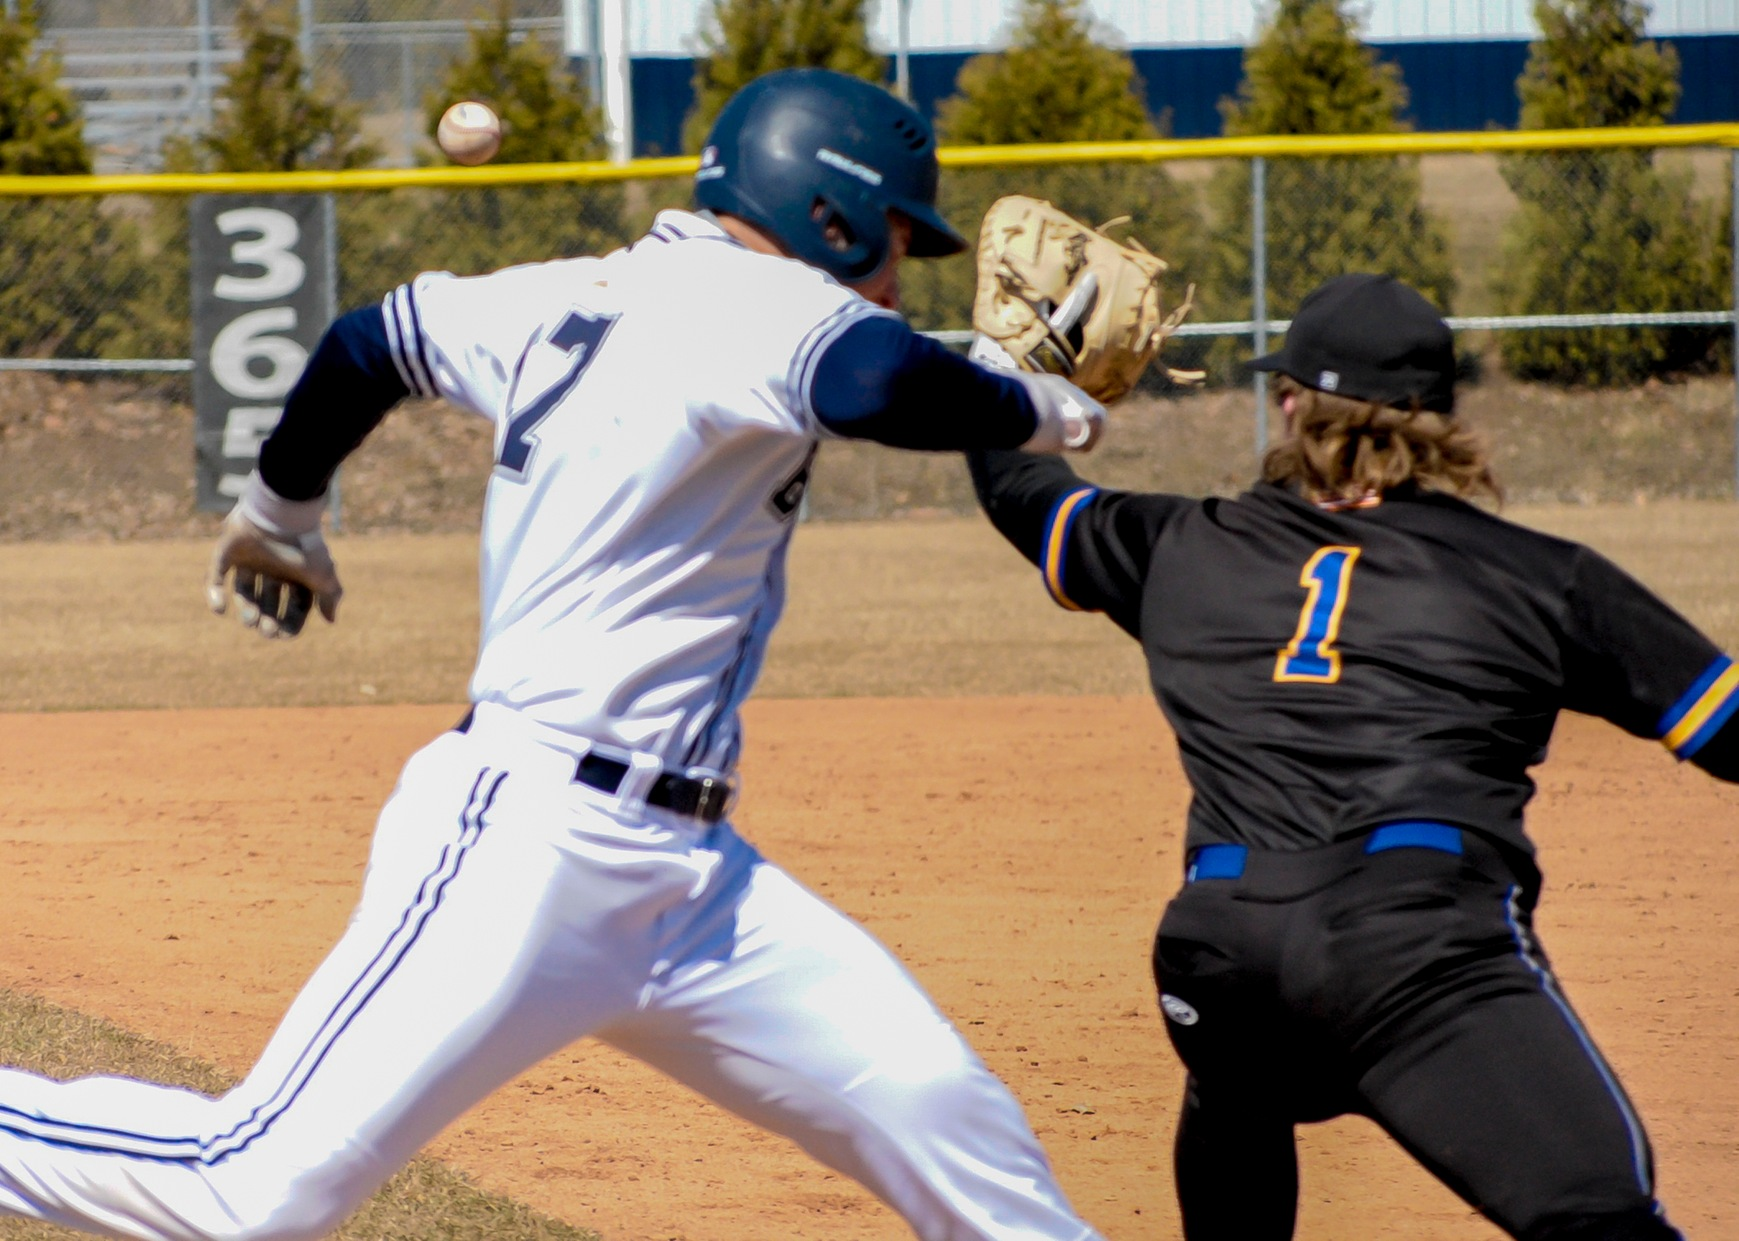 DMACC baseball team avenges earlier loss to IHCC with 5-3 win